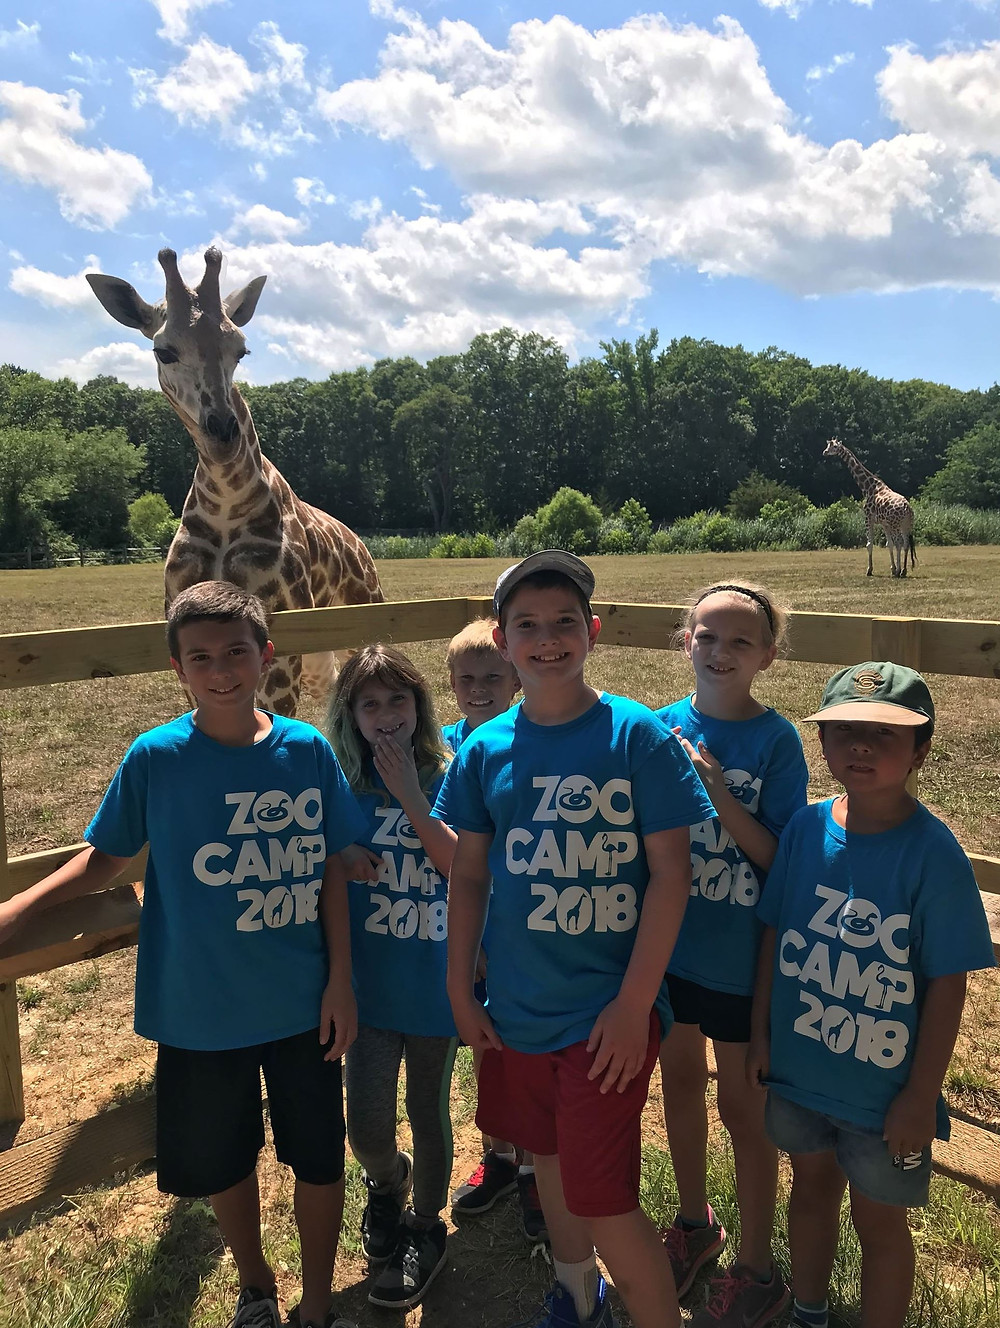 Cape May County Zoo Camp